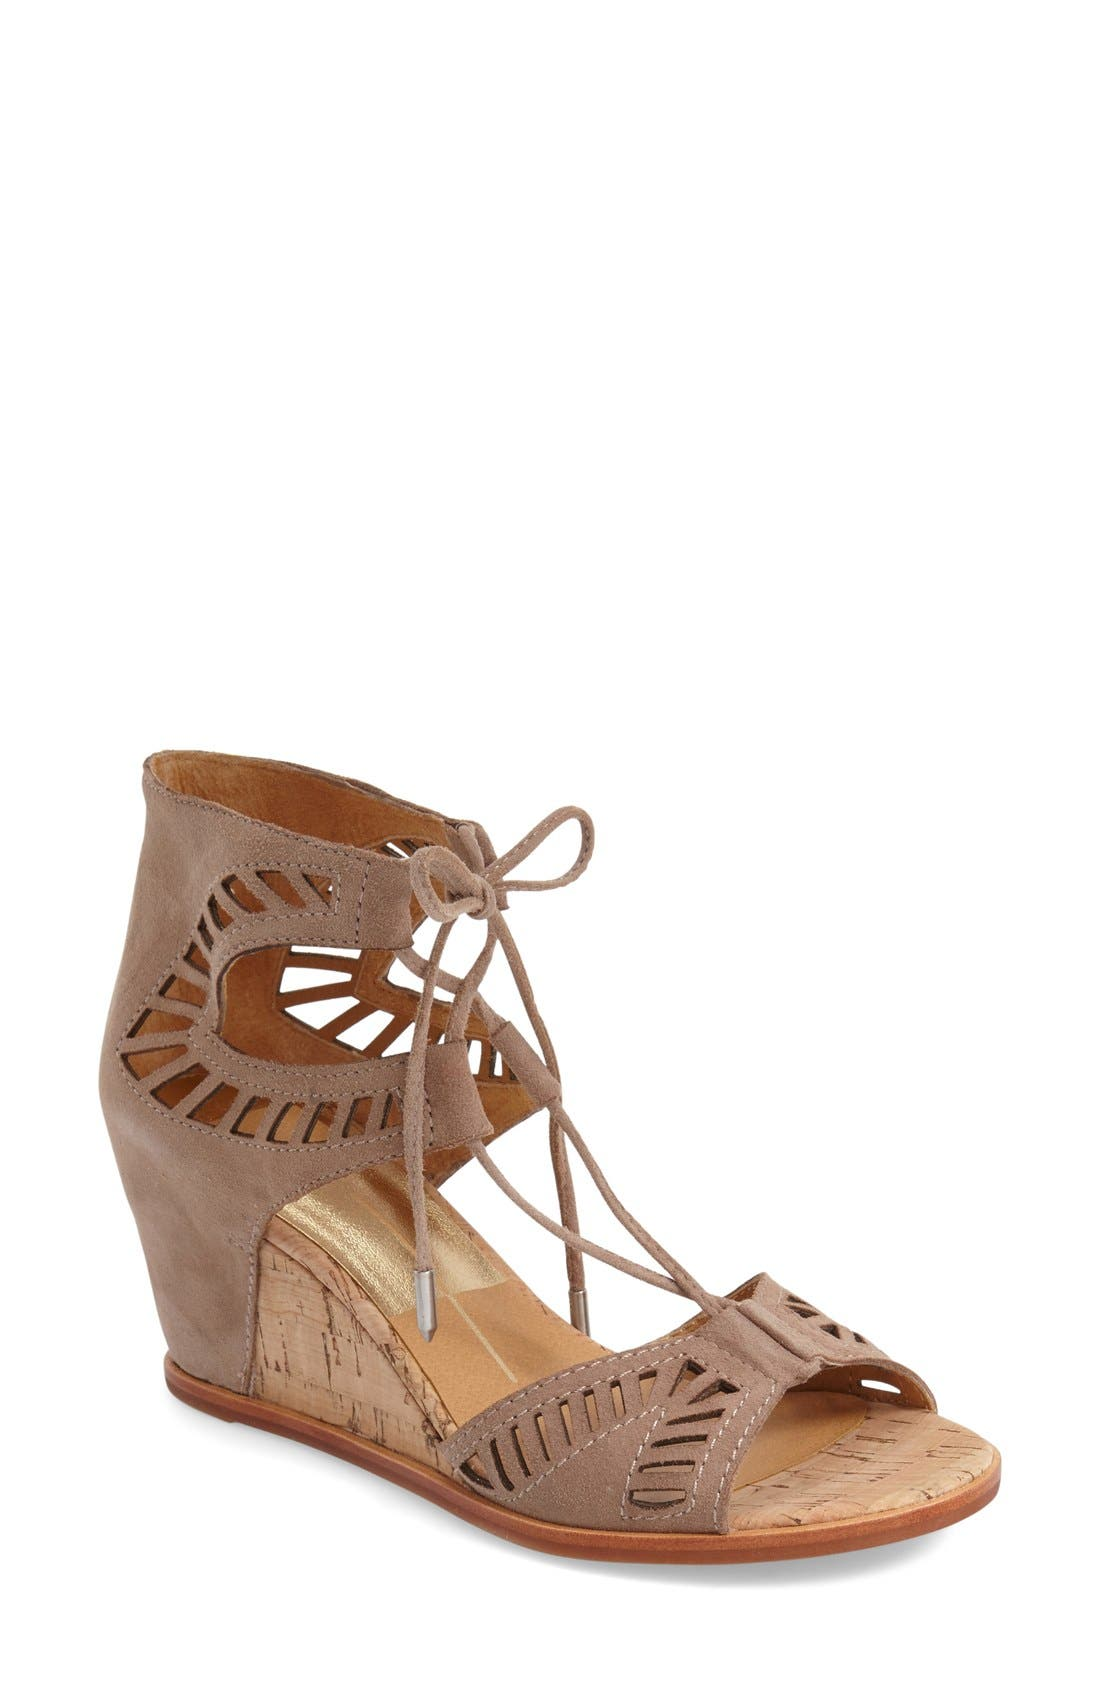 Main Image - Dolce Vita 'Linsey' Lace-Up Wedge Sandal (Women)